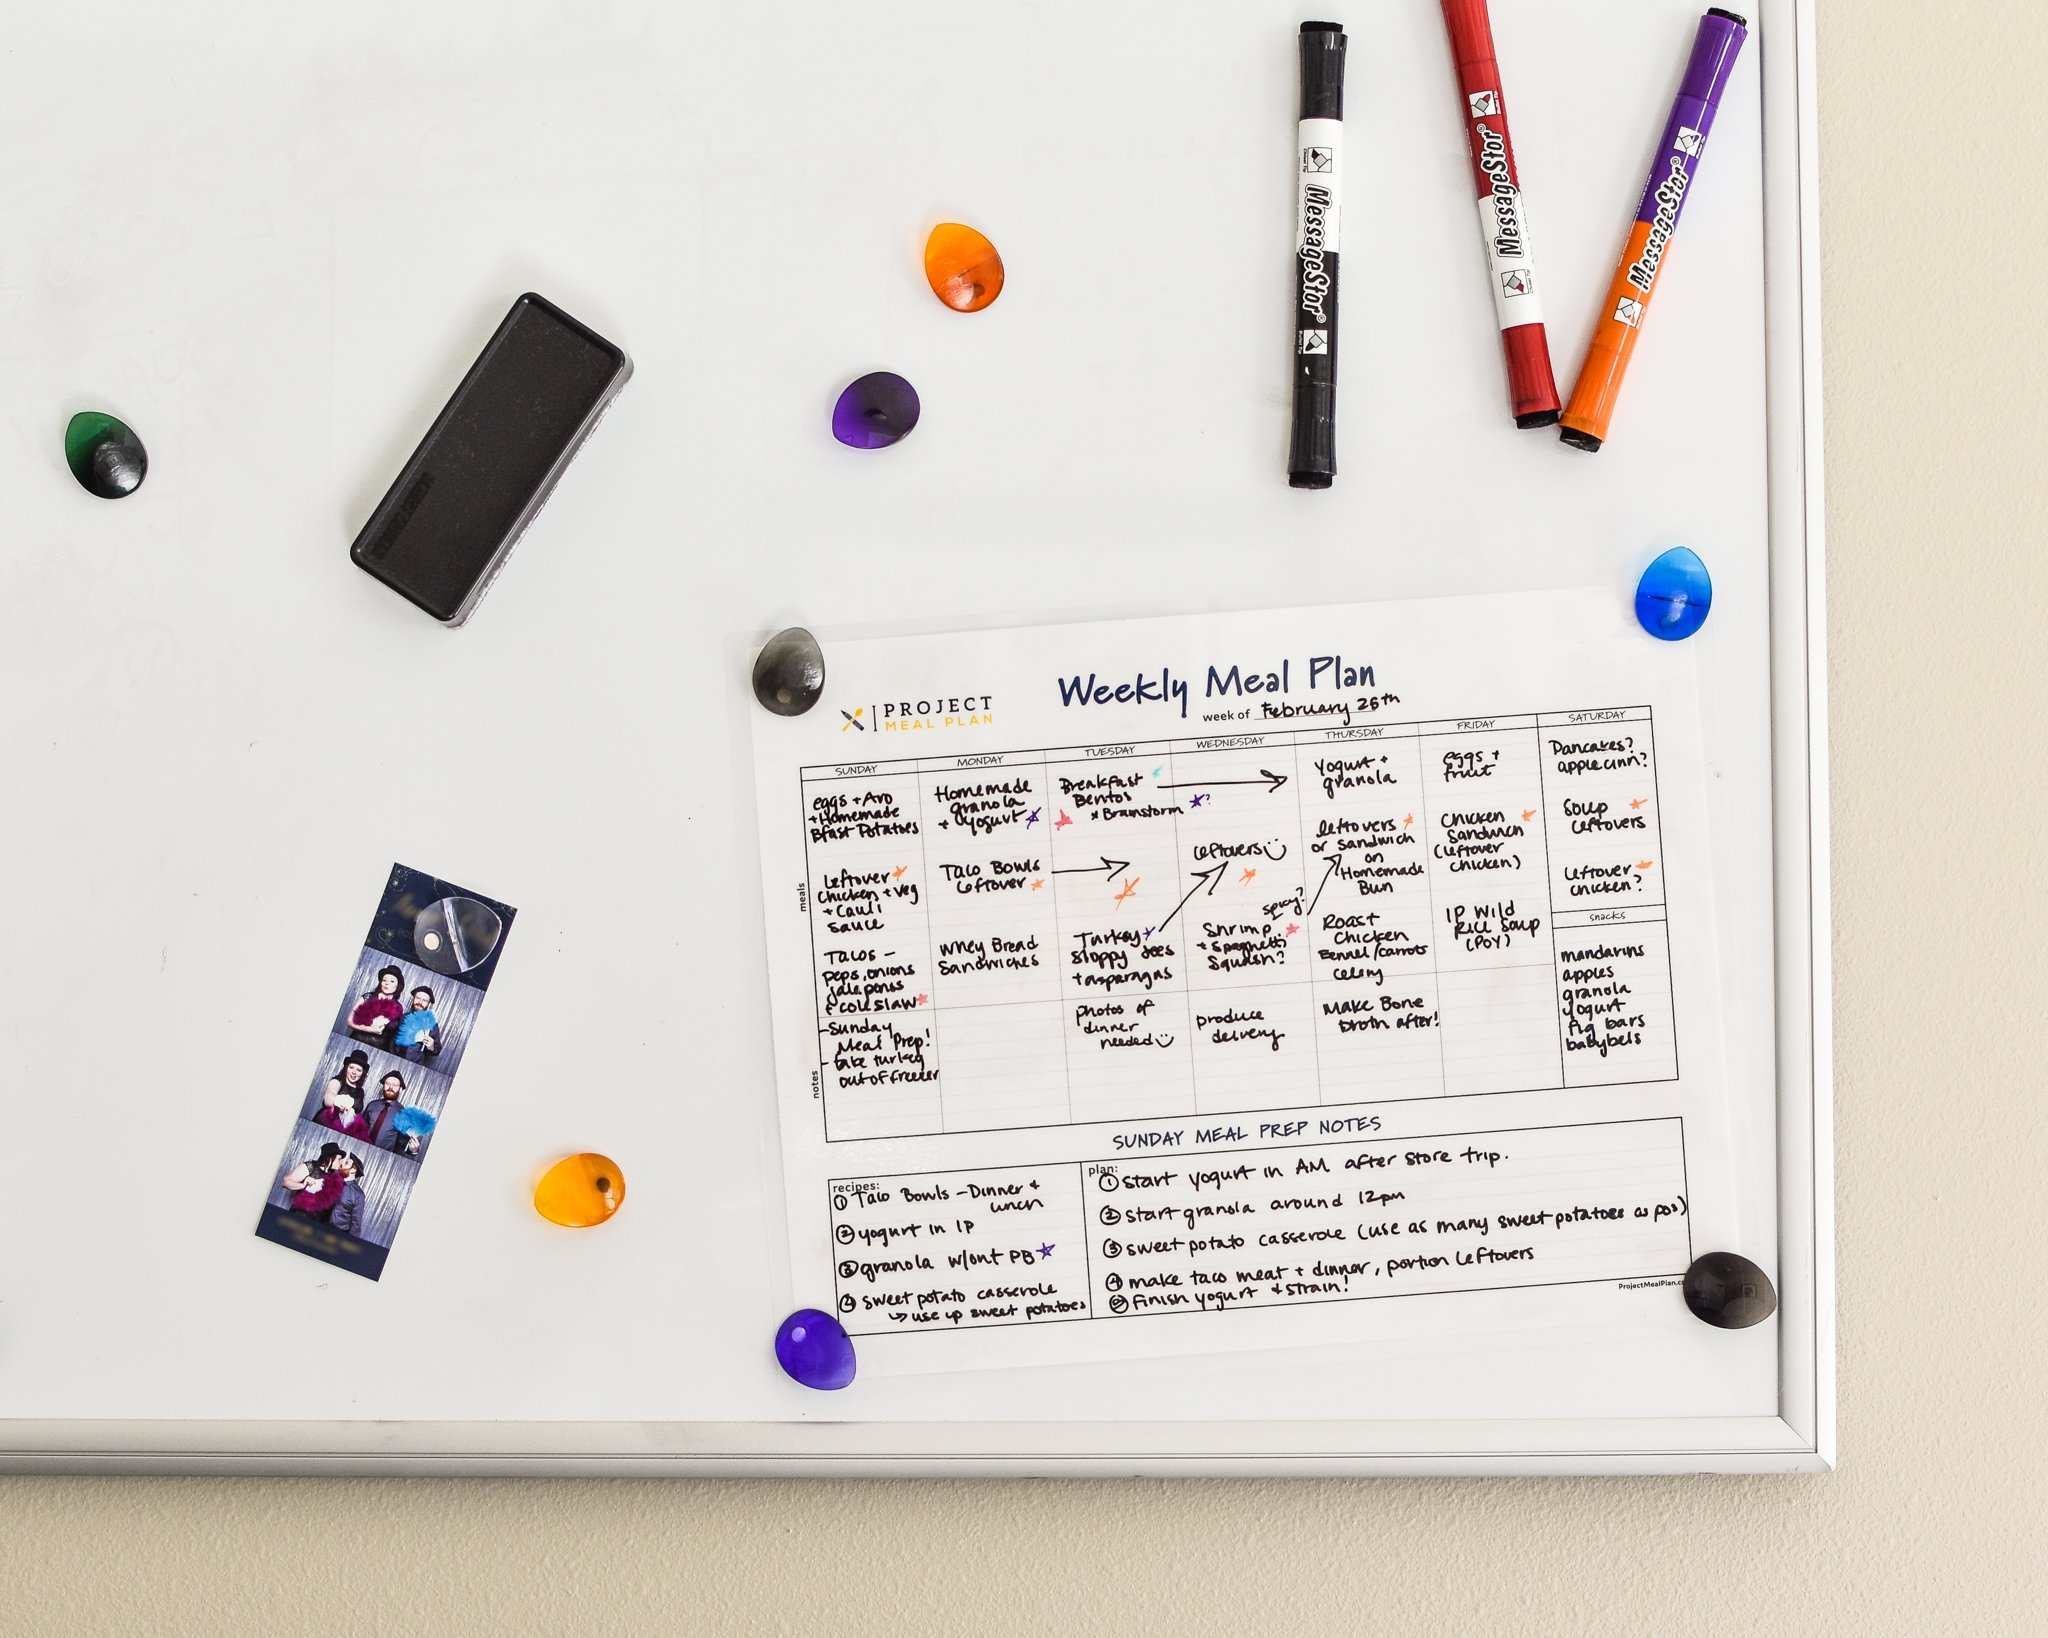 Weekly Meal Planner on a whiteboard with magnets and dry erase markers.